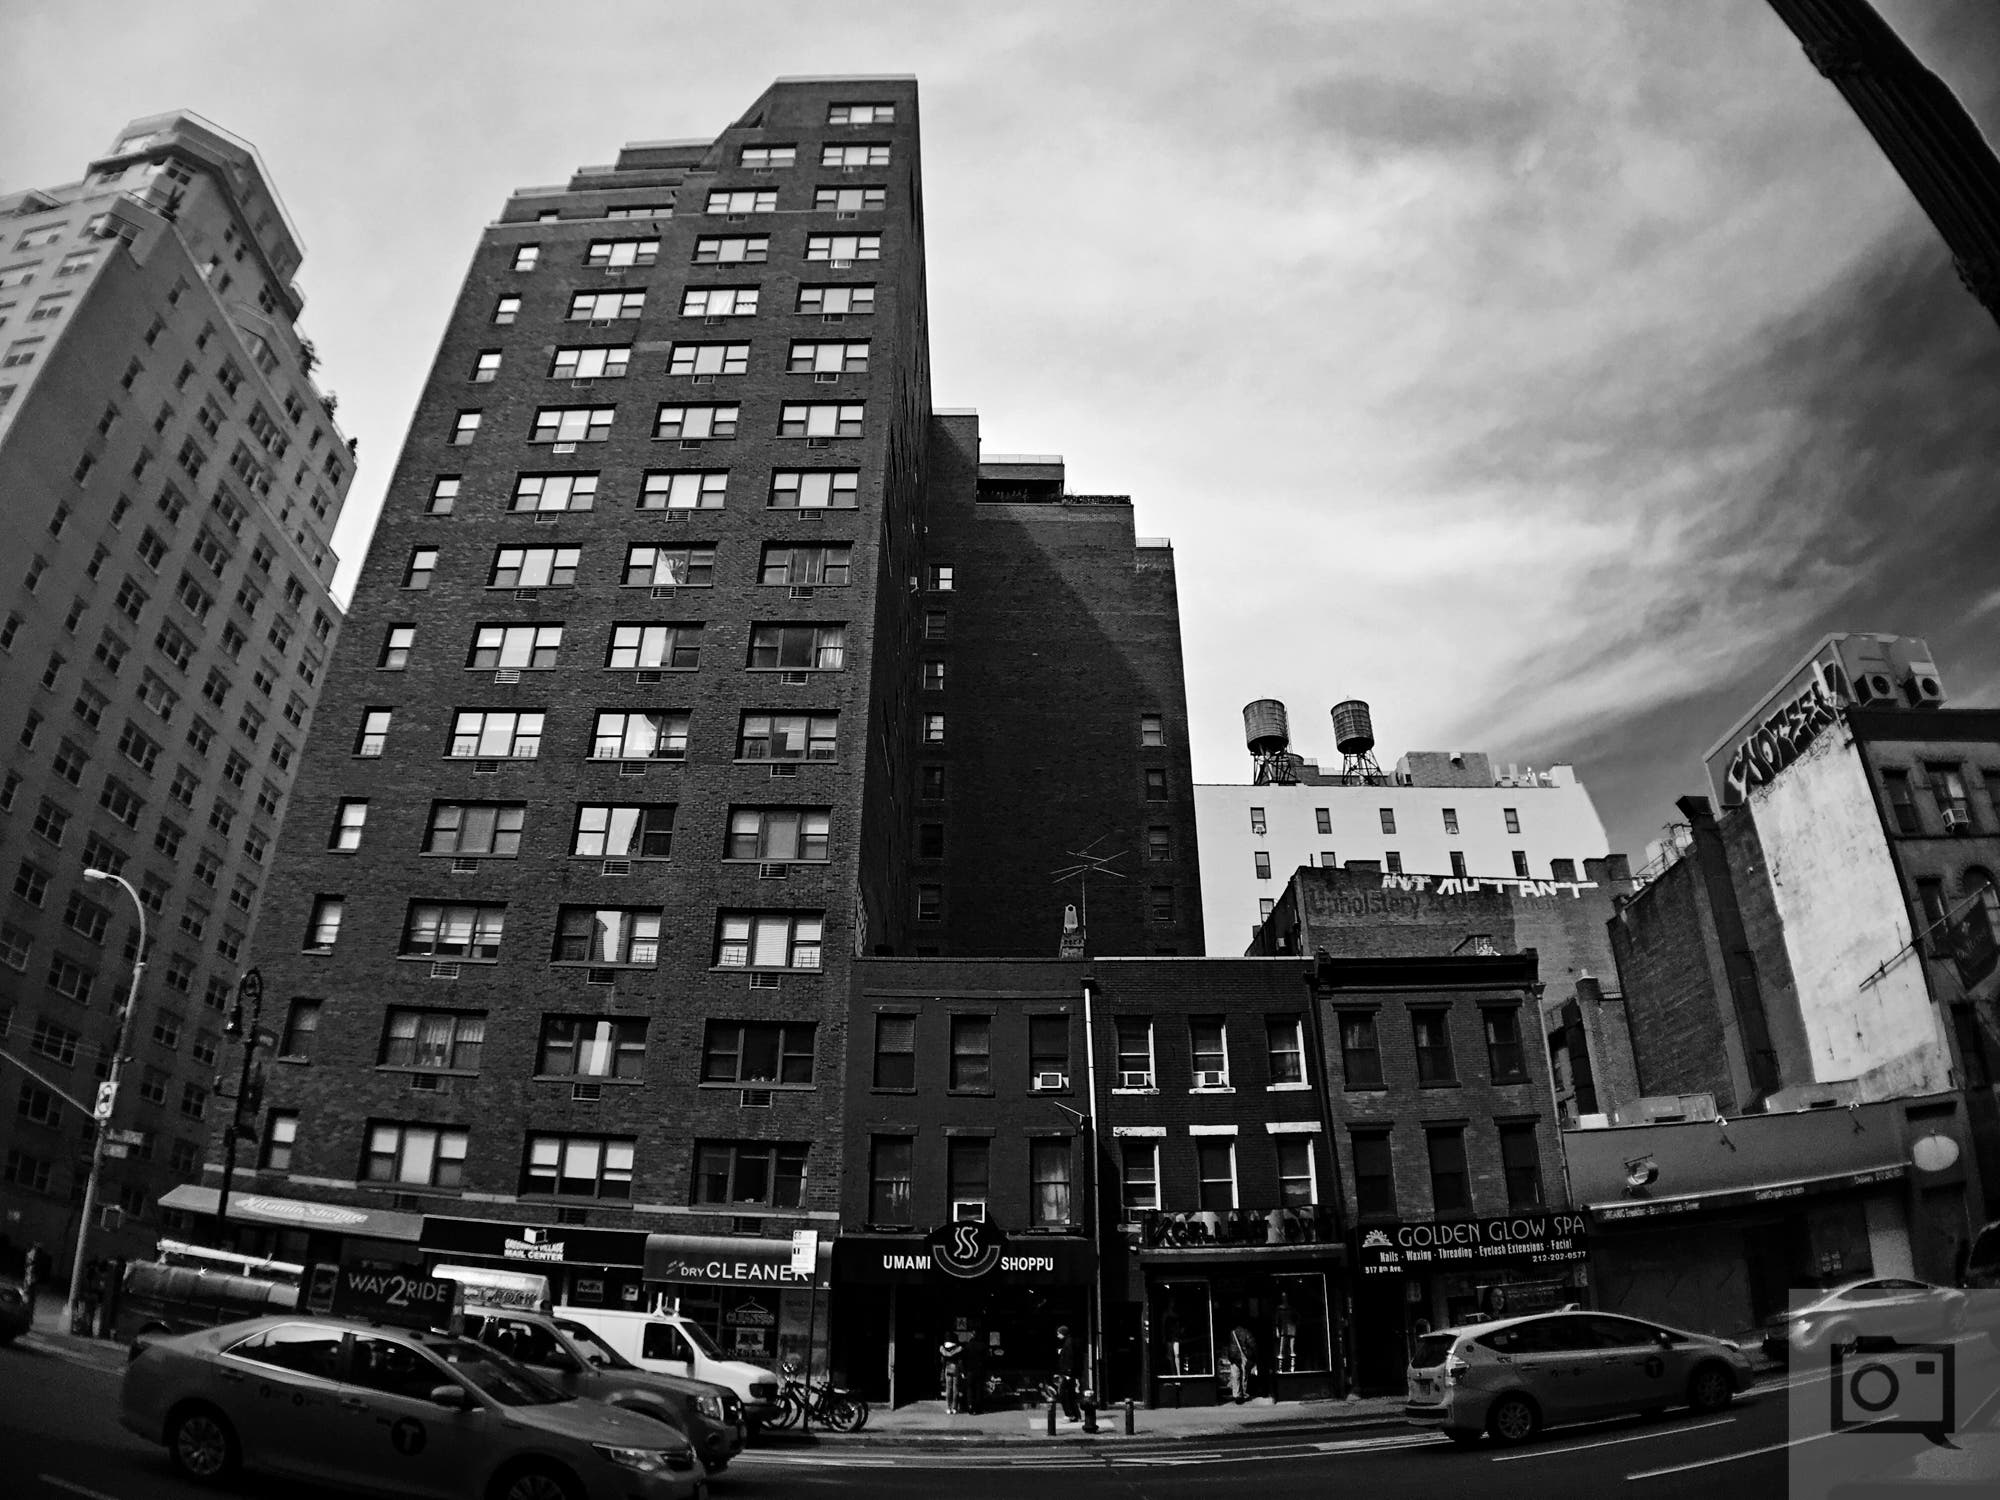 Creating High Contrast Black and White Photos With Your Smartphone